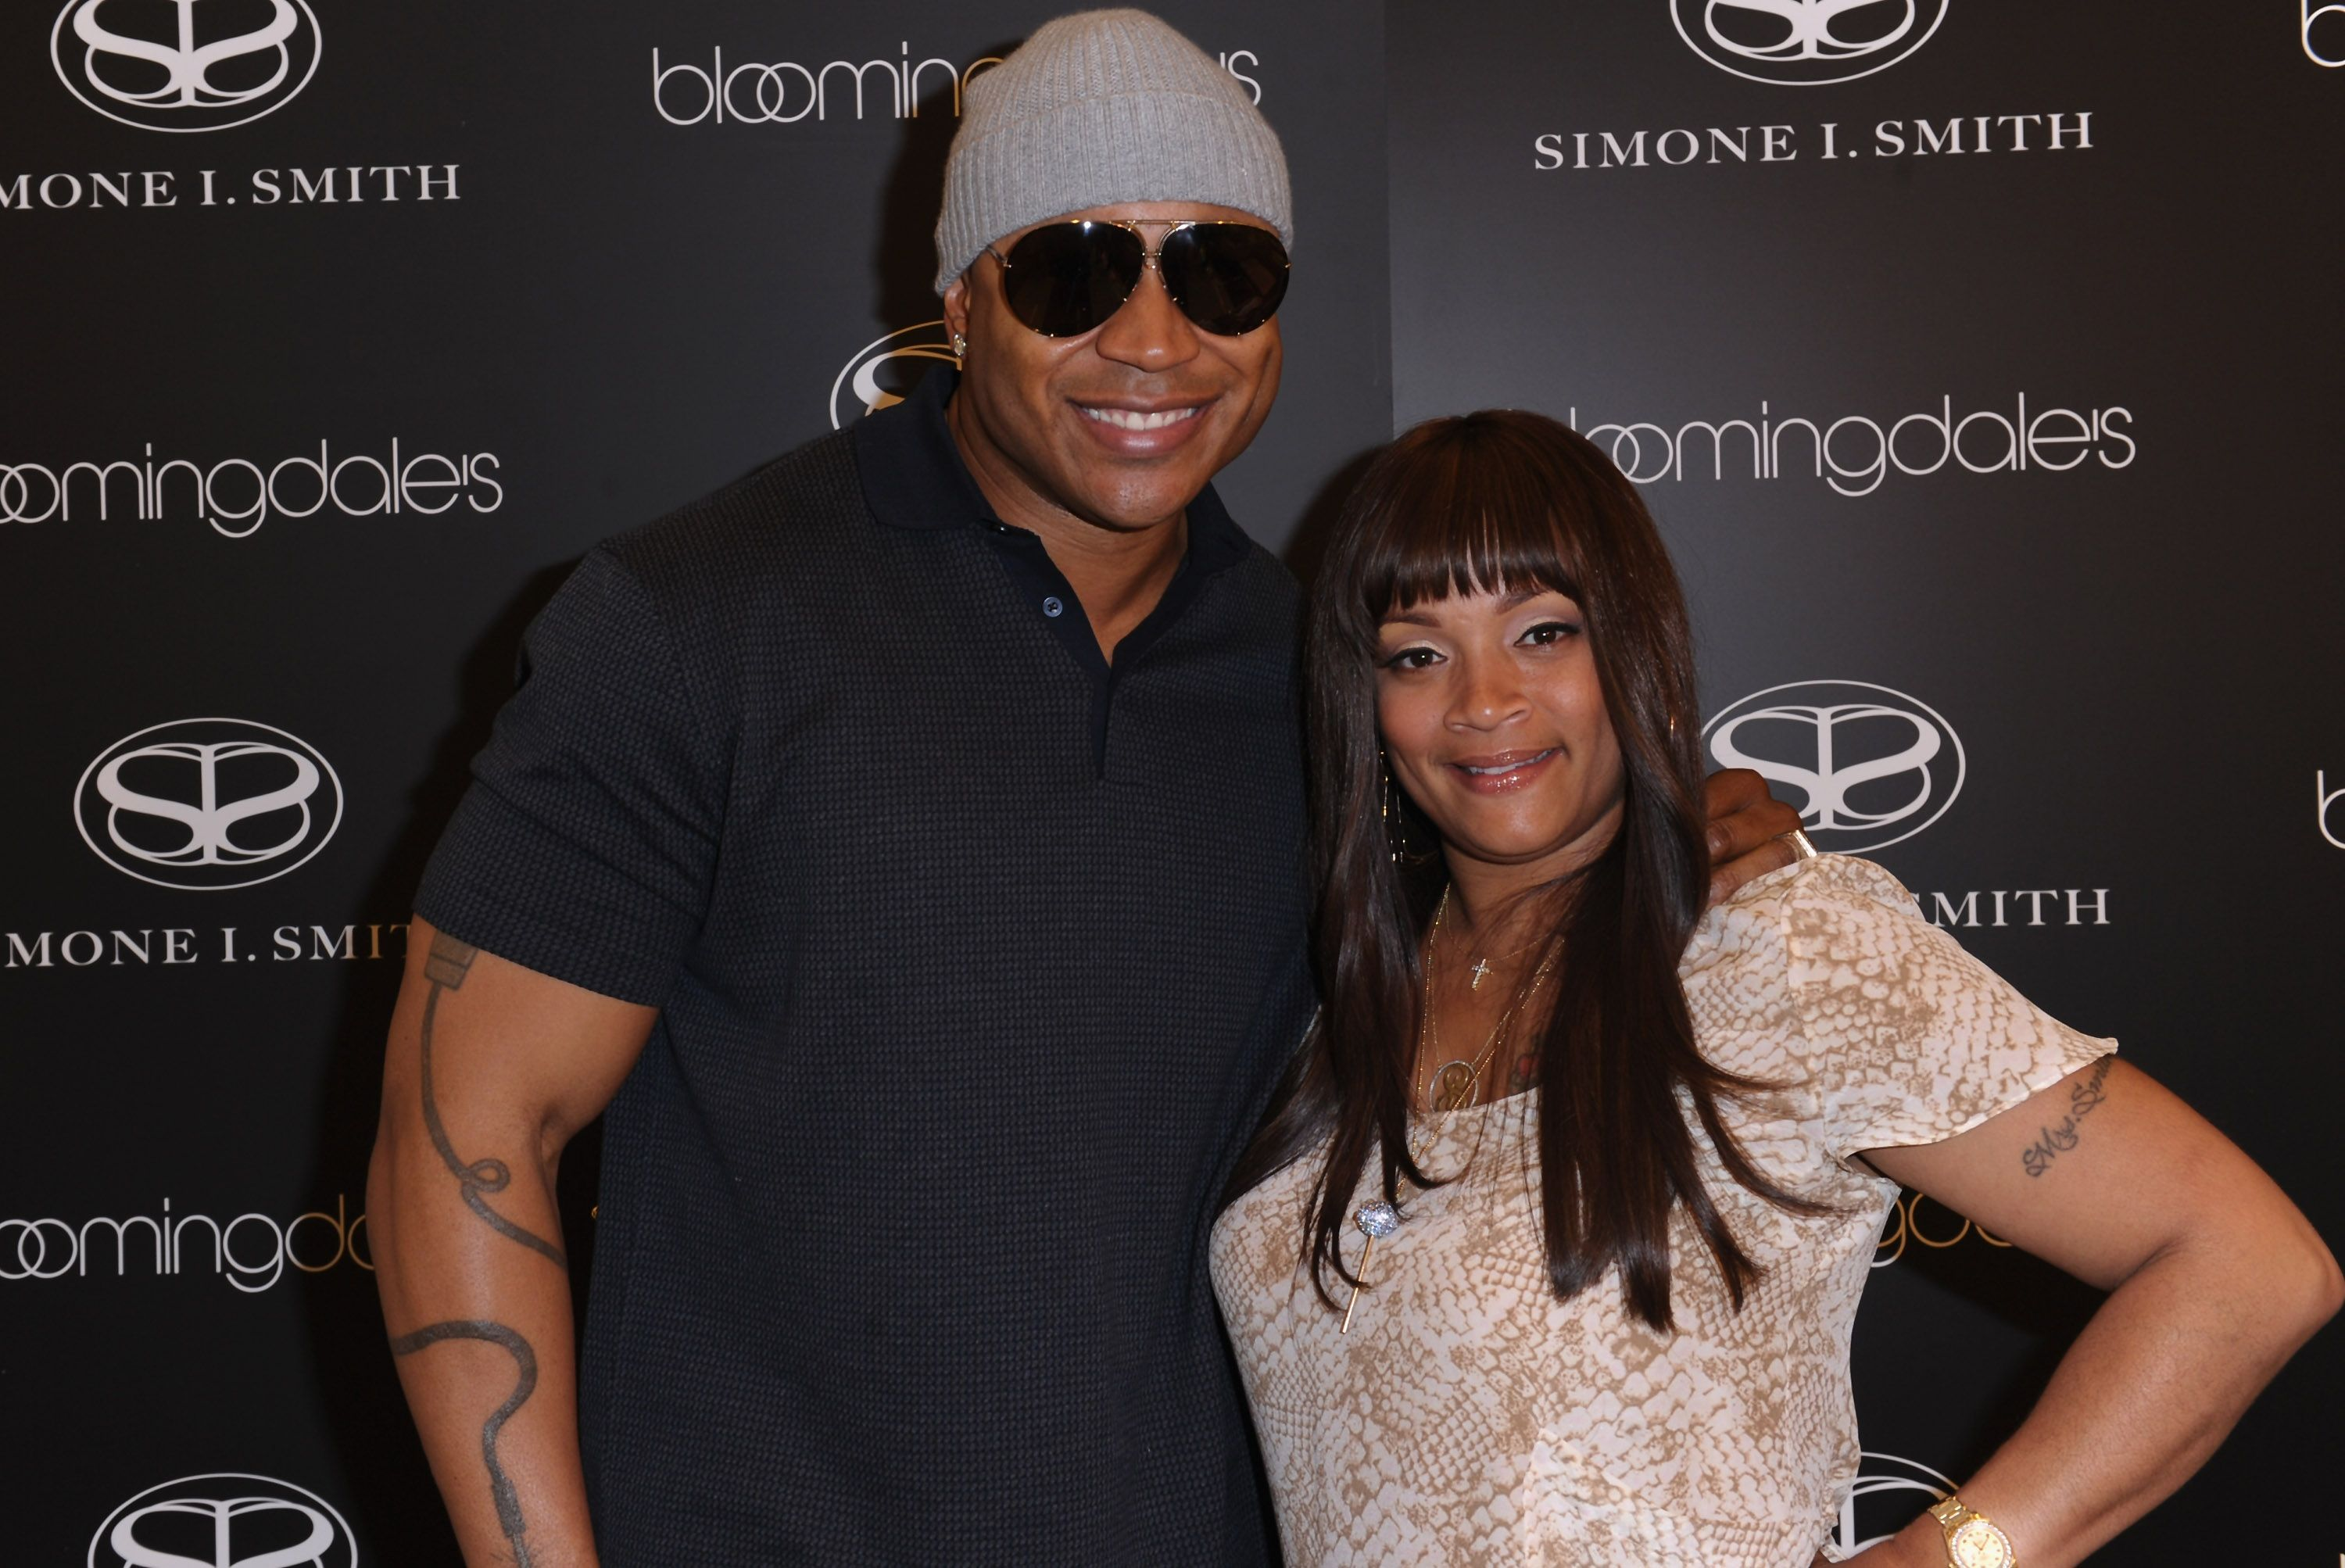 Actor LL Cool J and Simone I. Smith attend a personal appearance by Simone I. Smith at Bloomingdale's on May 12, 2011 in Century City, California | Photo: Getty Images